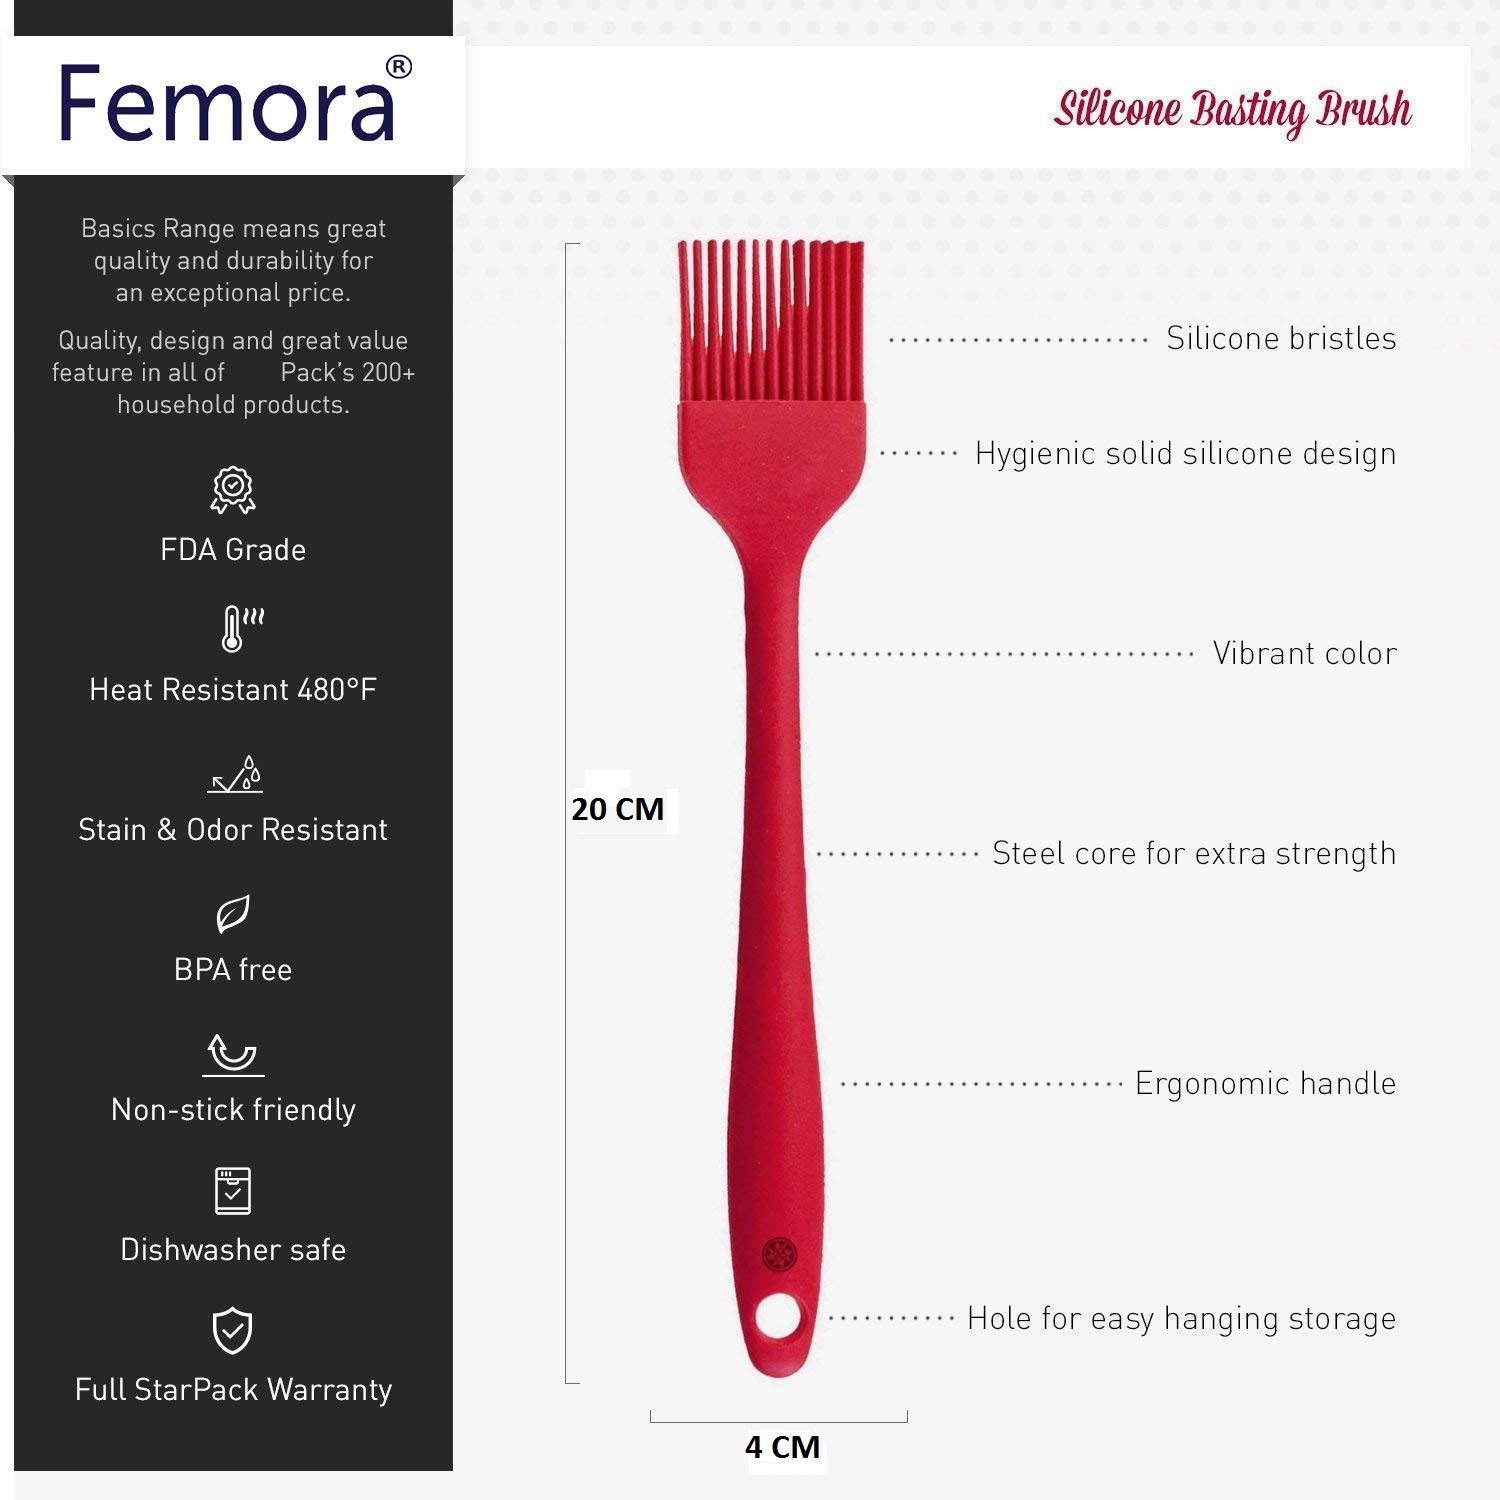 Silicone Premium Egg Whisk, Slotted Turner, Spoon, Brush with Grip Handle, Set of 4